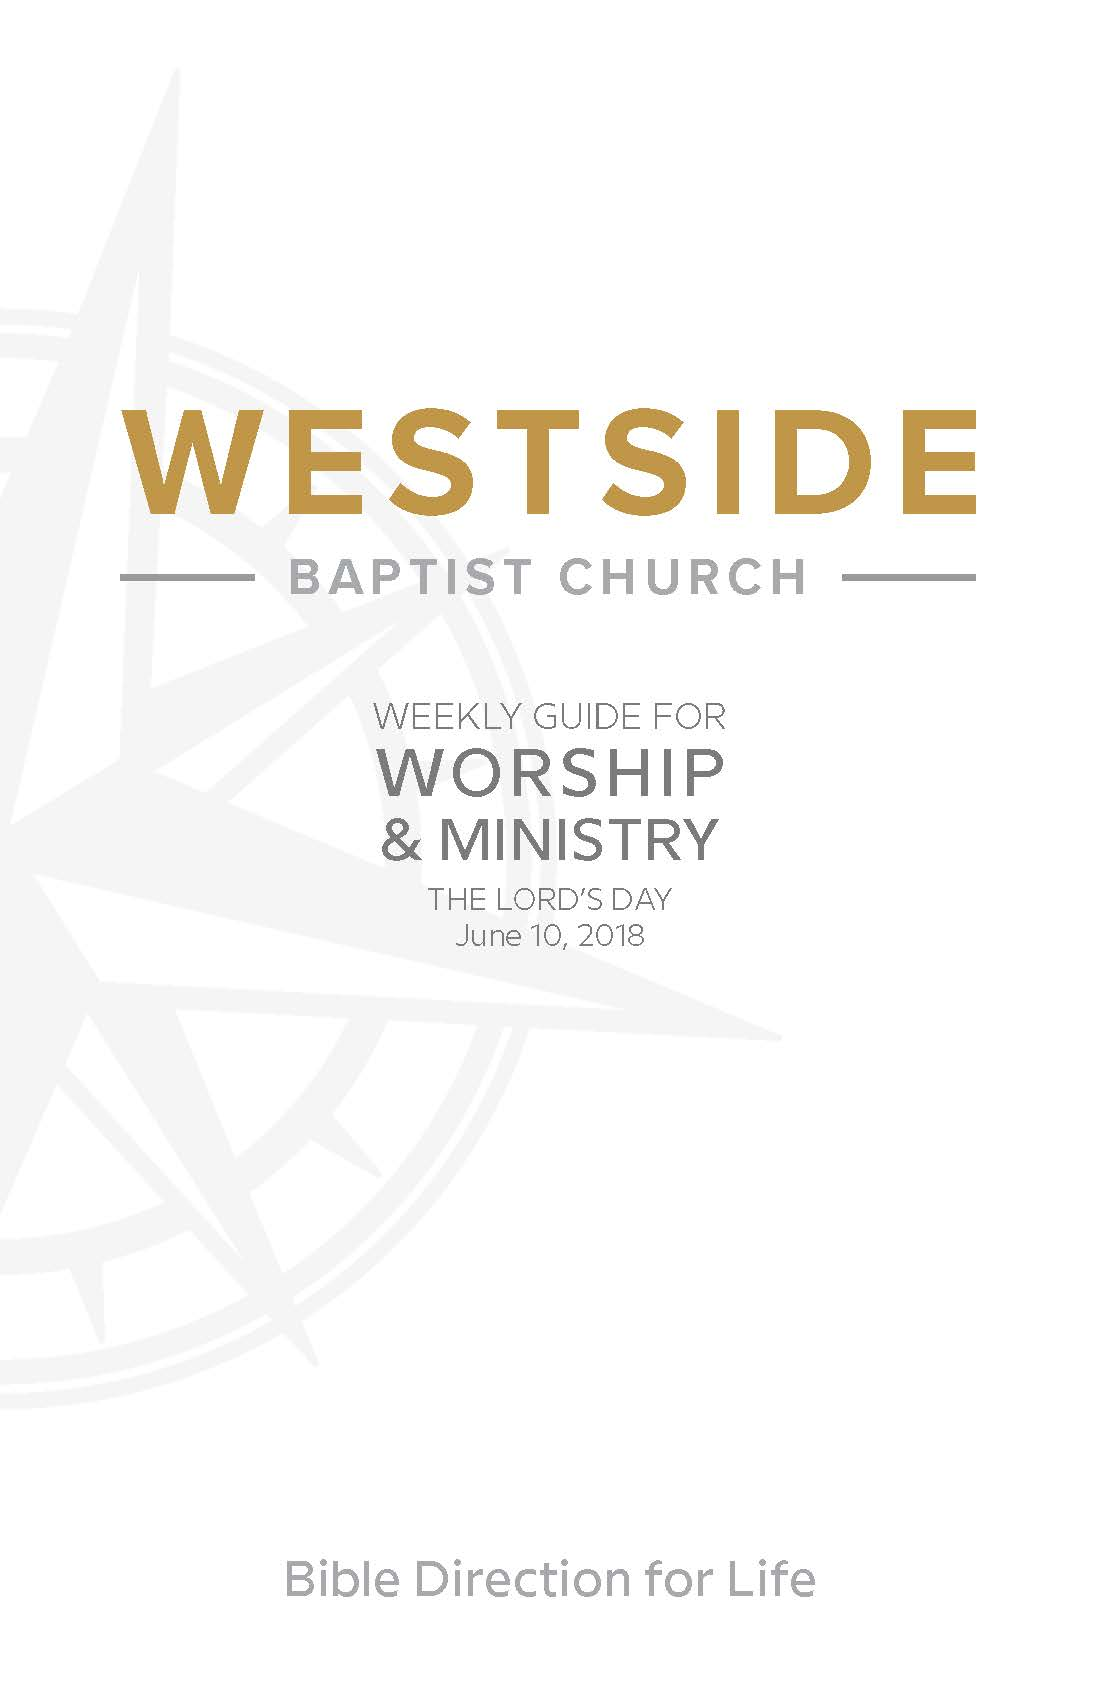 Weekly Guide for Worship and Ministry—June 10